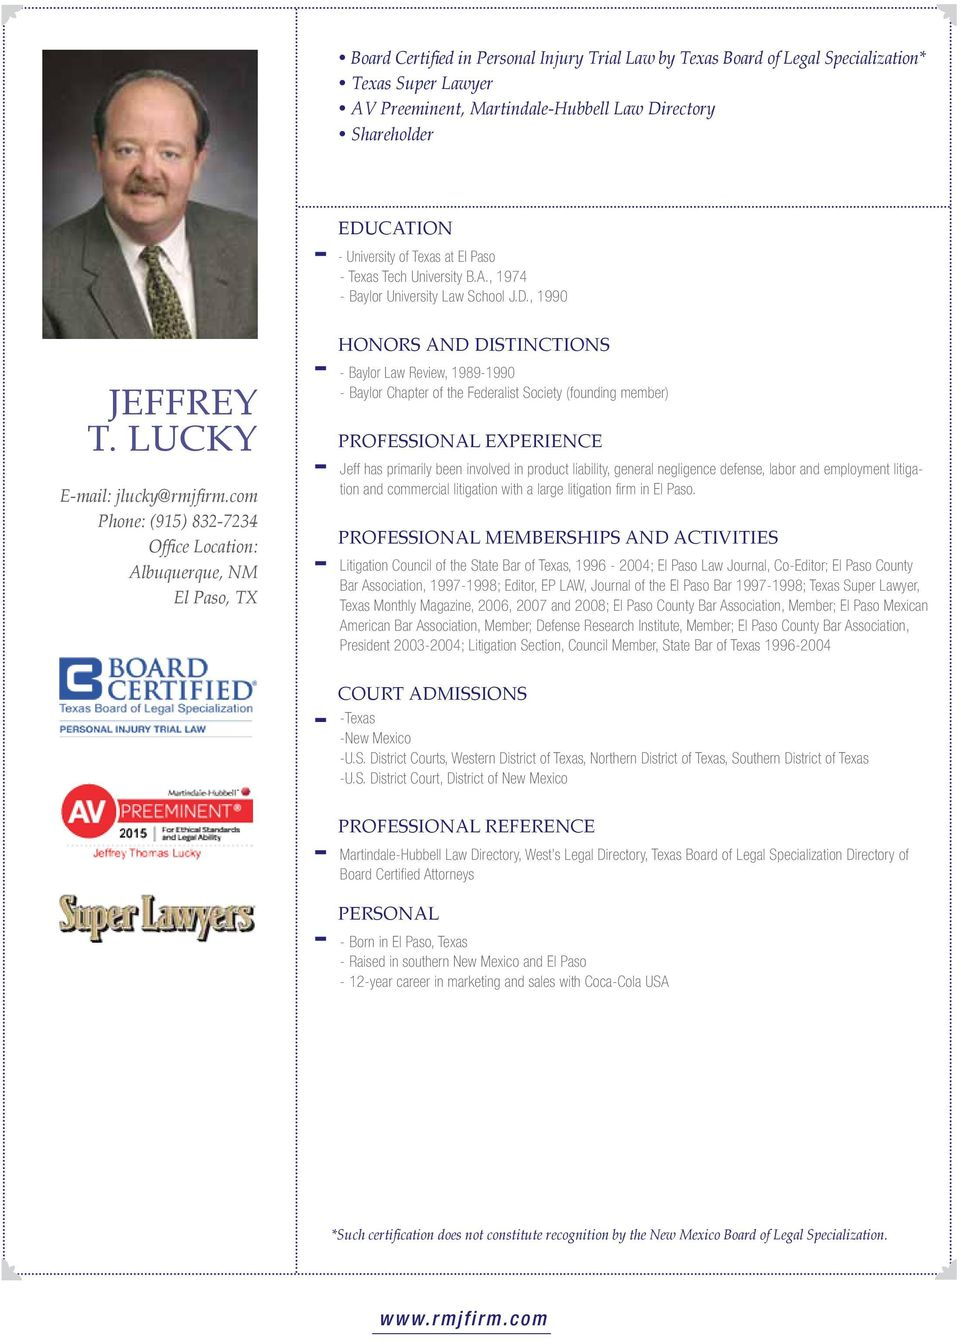 com Phone: (915) 832-7234 Office Location: Albuquerque, NM El Paso, TX - Baylor Law Review, 1989-1990 - Baylor Chapter of the Federalist Society (founding member) Jeff has primarily been involved in